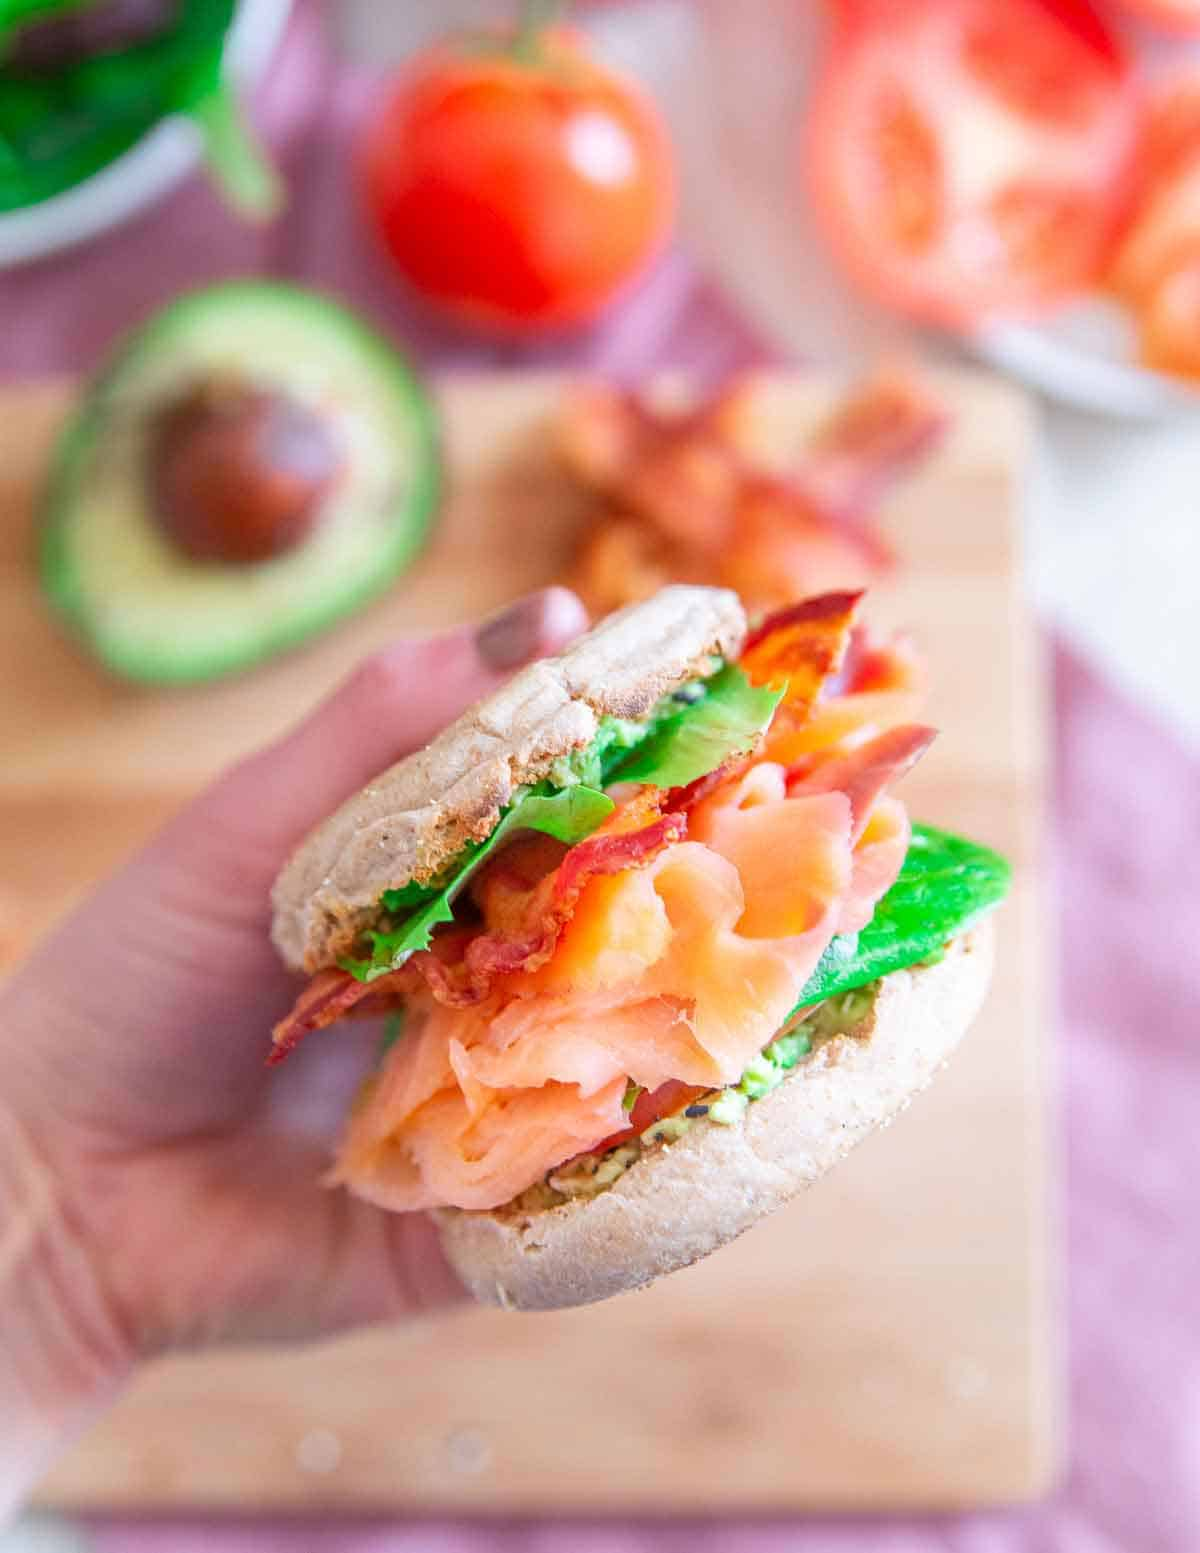 This smoked salmon breakfast BLT is the perfect way to celebrate the weekend.